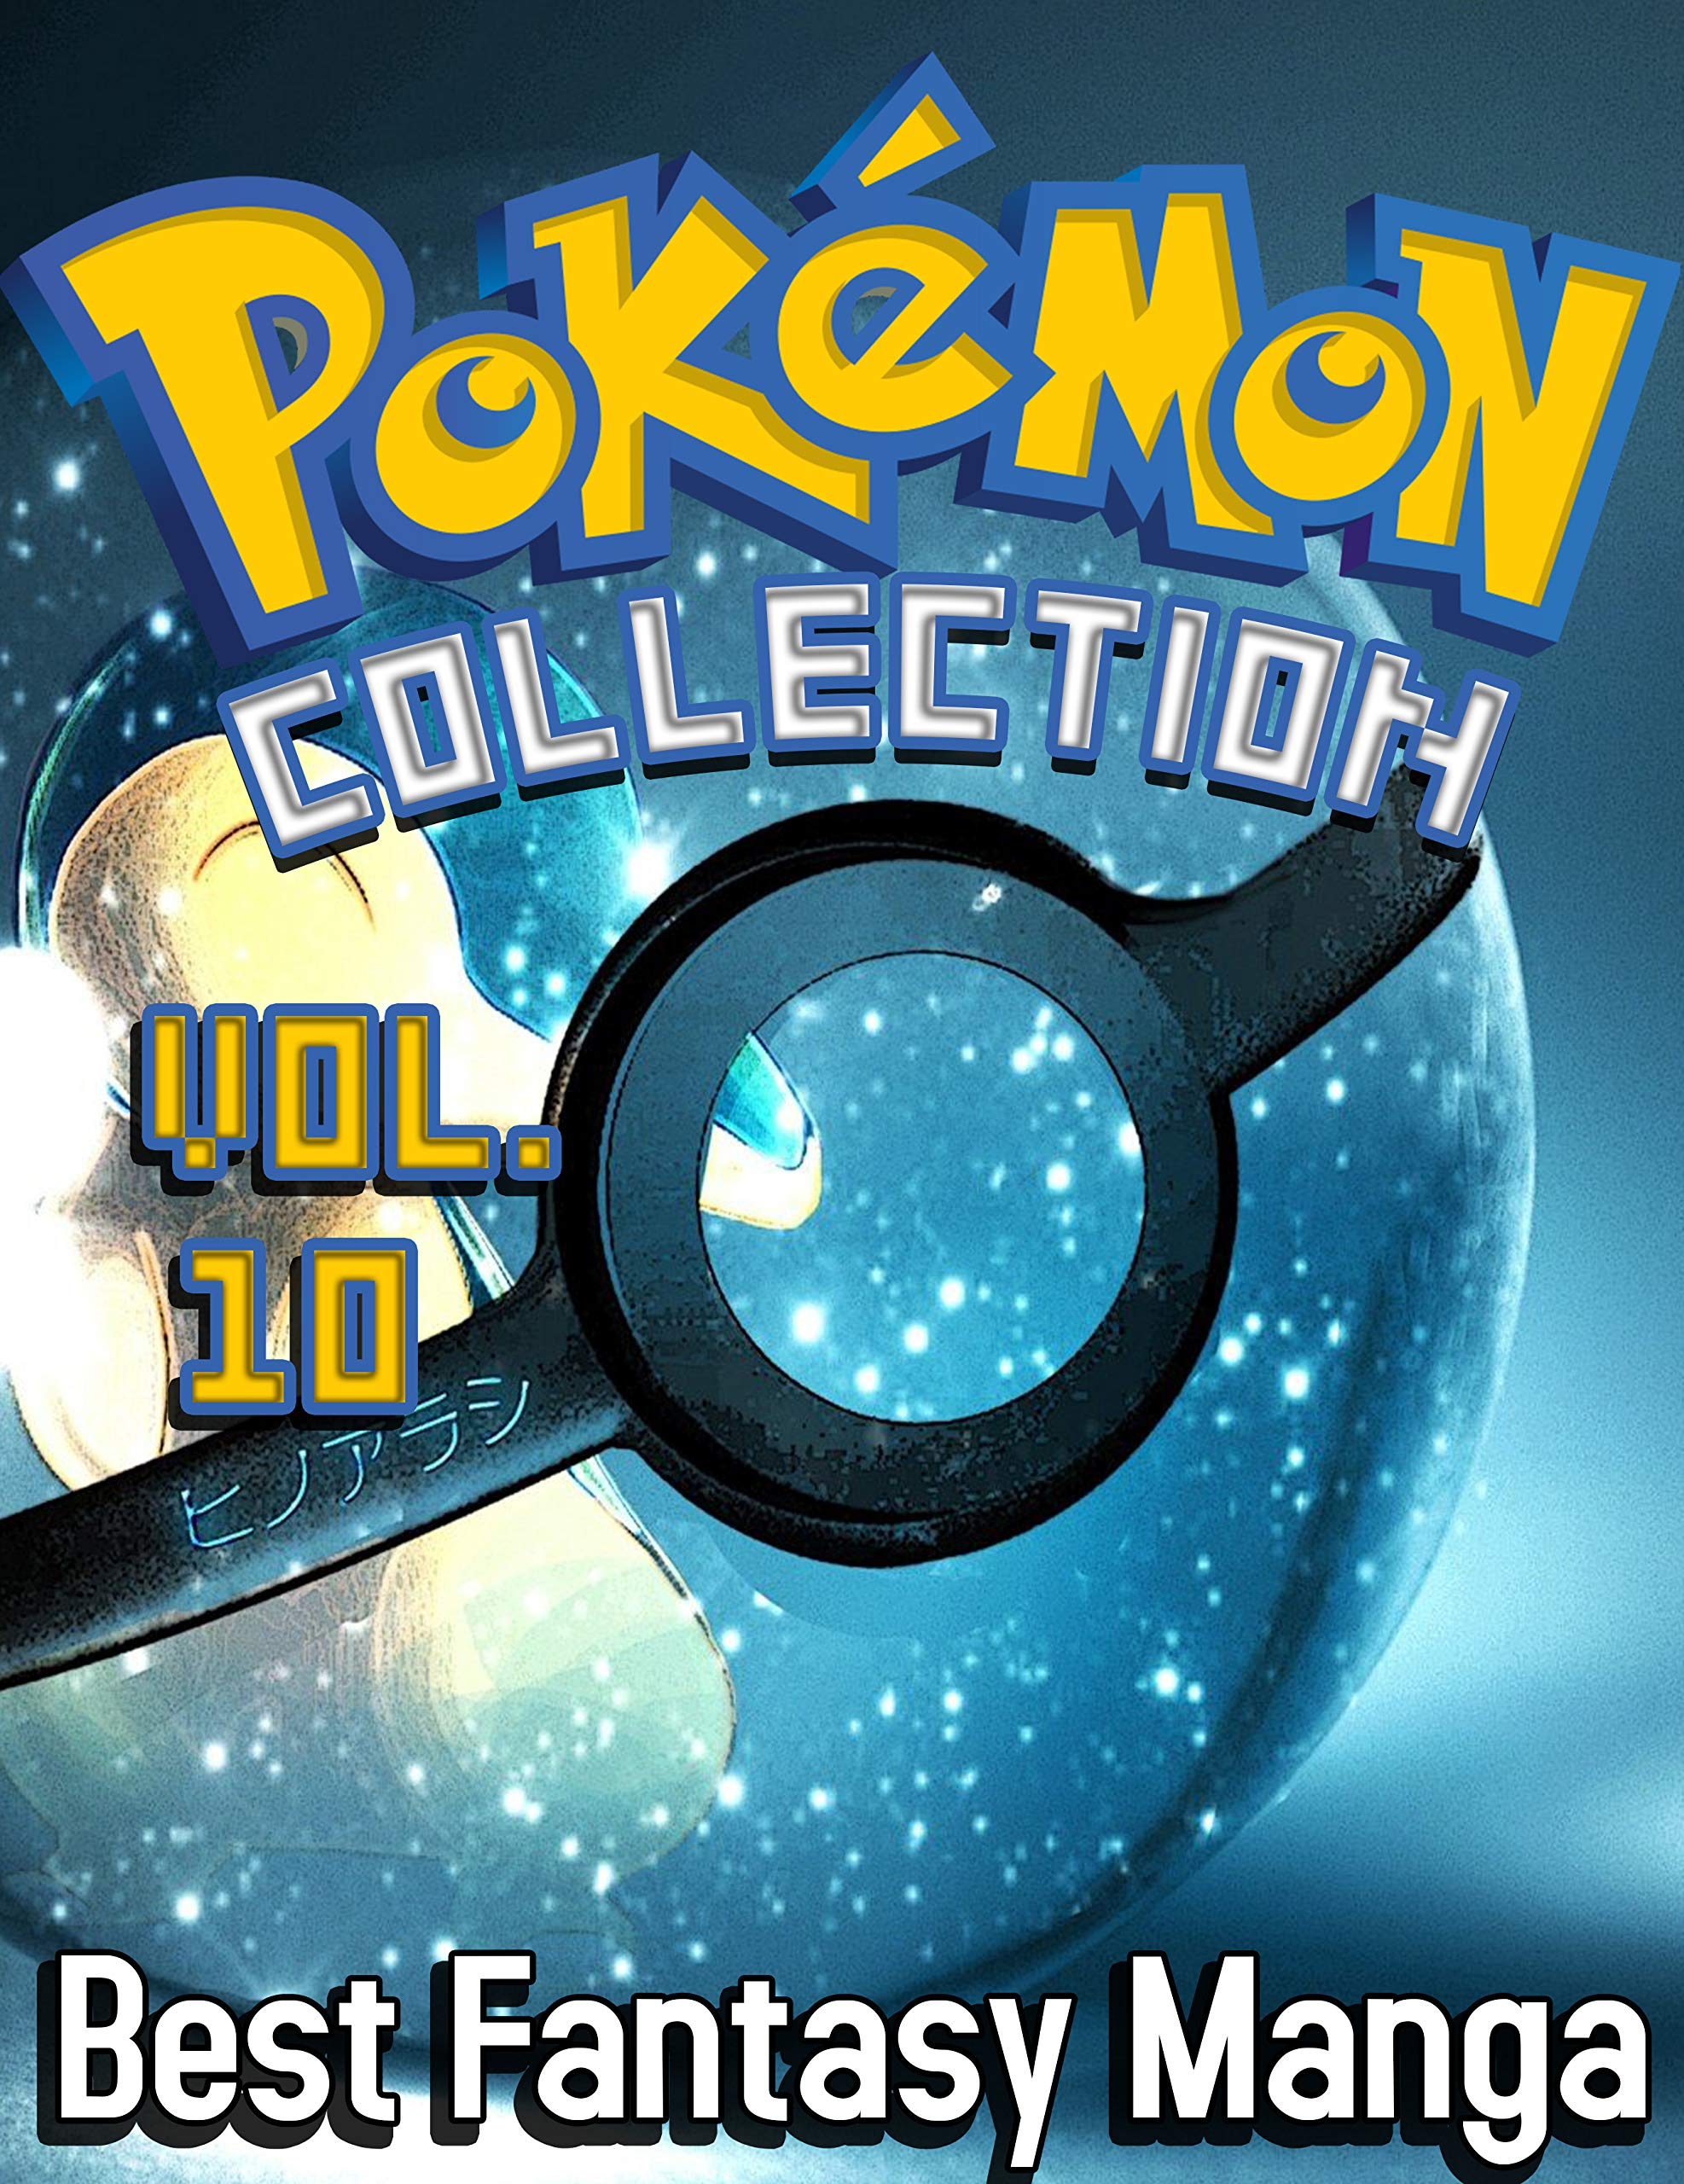 Best Fantasy Manga Pokemon Deluxe Edition: Full Collection Pokemon Vol 10